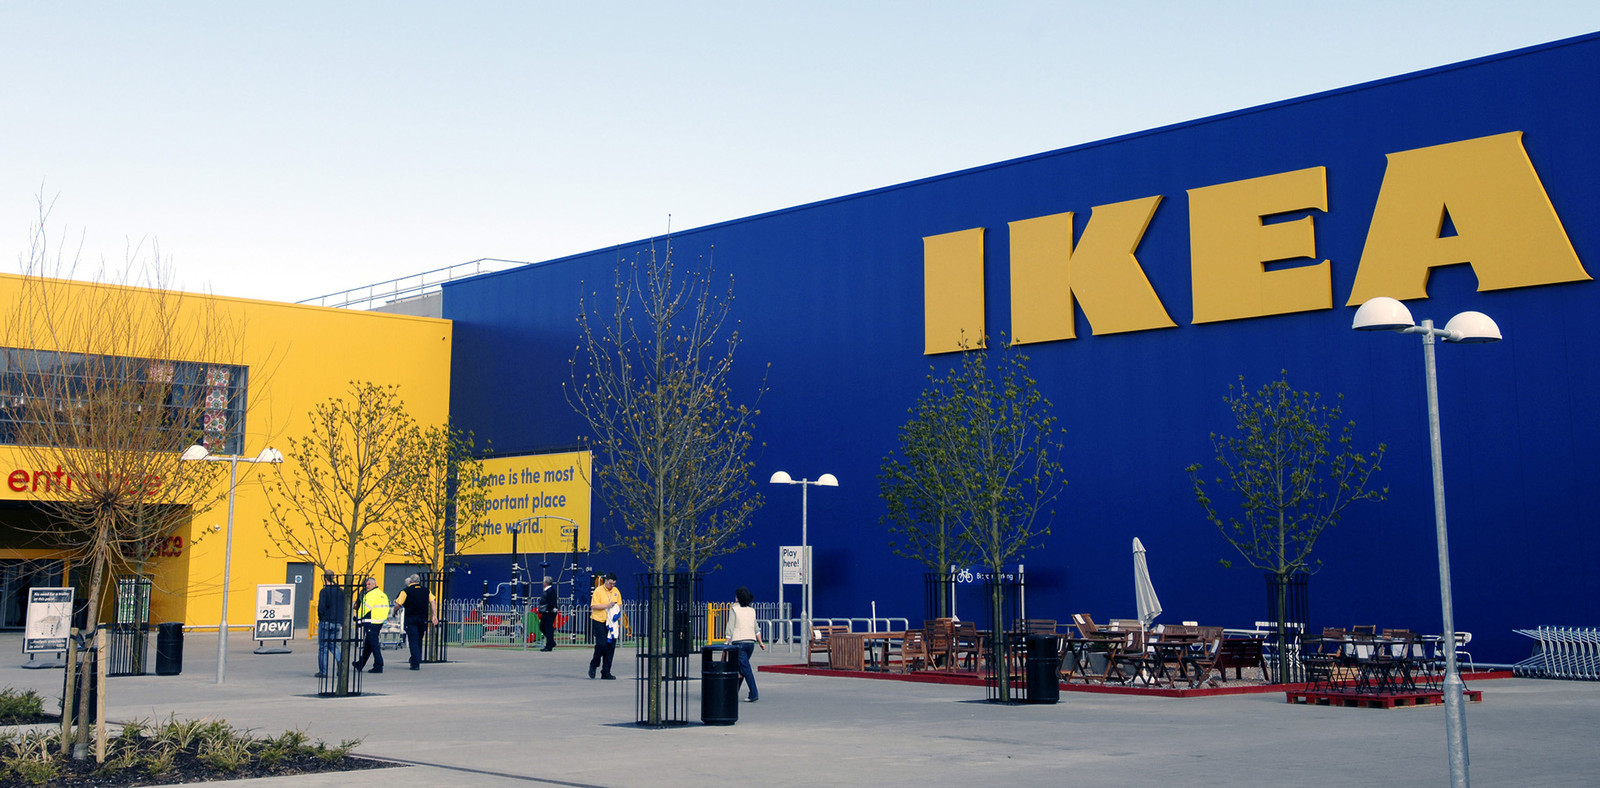 I visited IKEA in VR and it blew my mind.